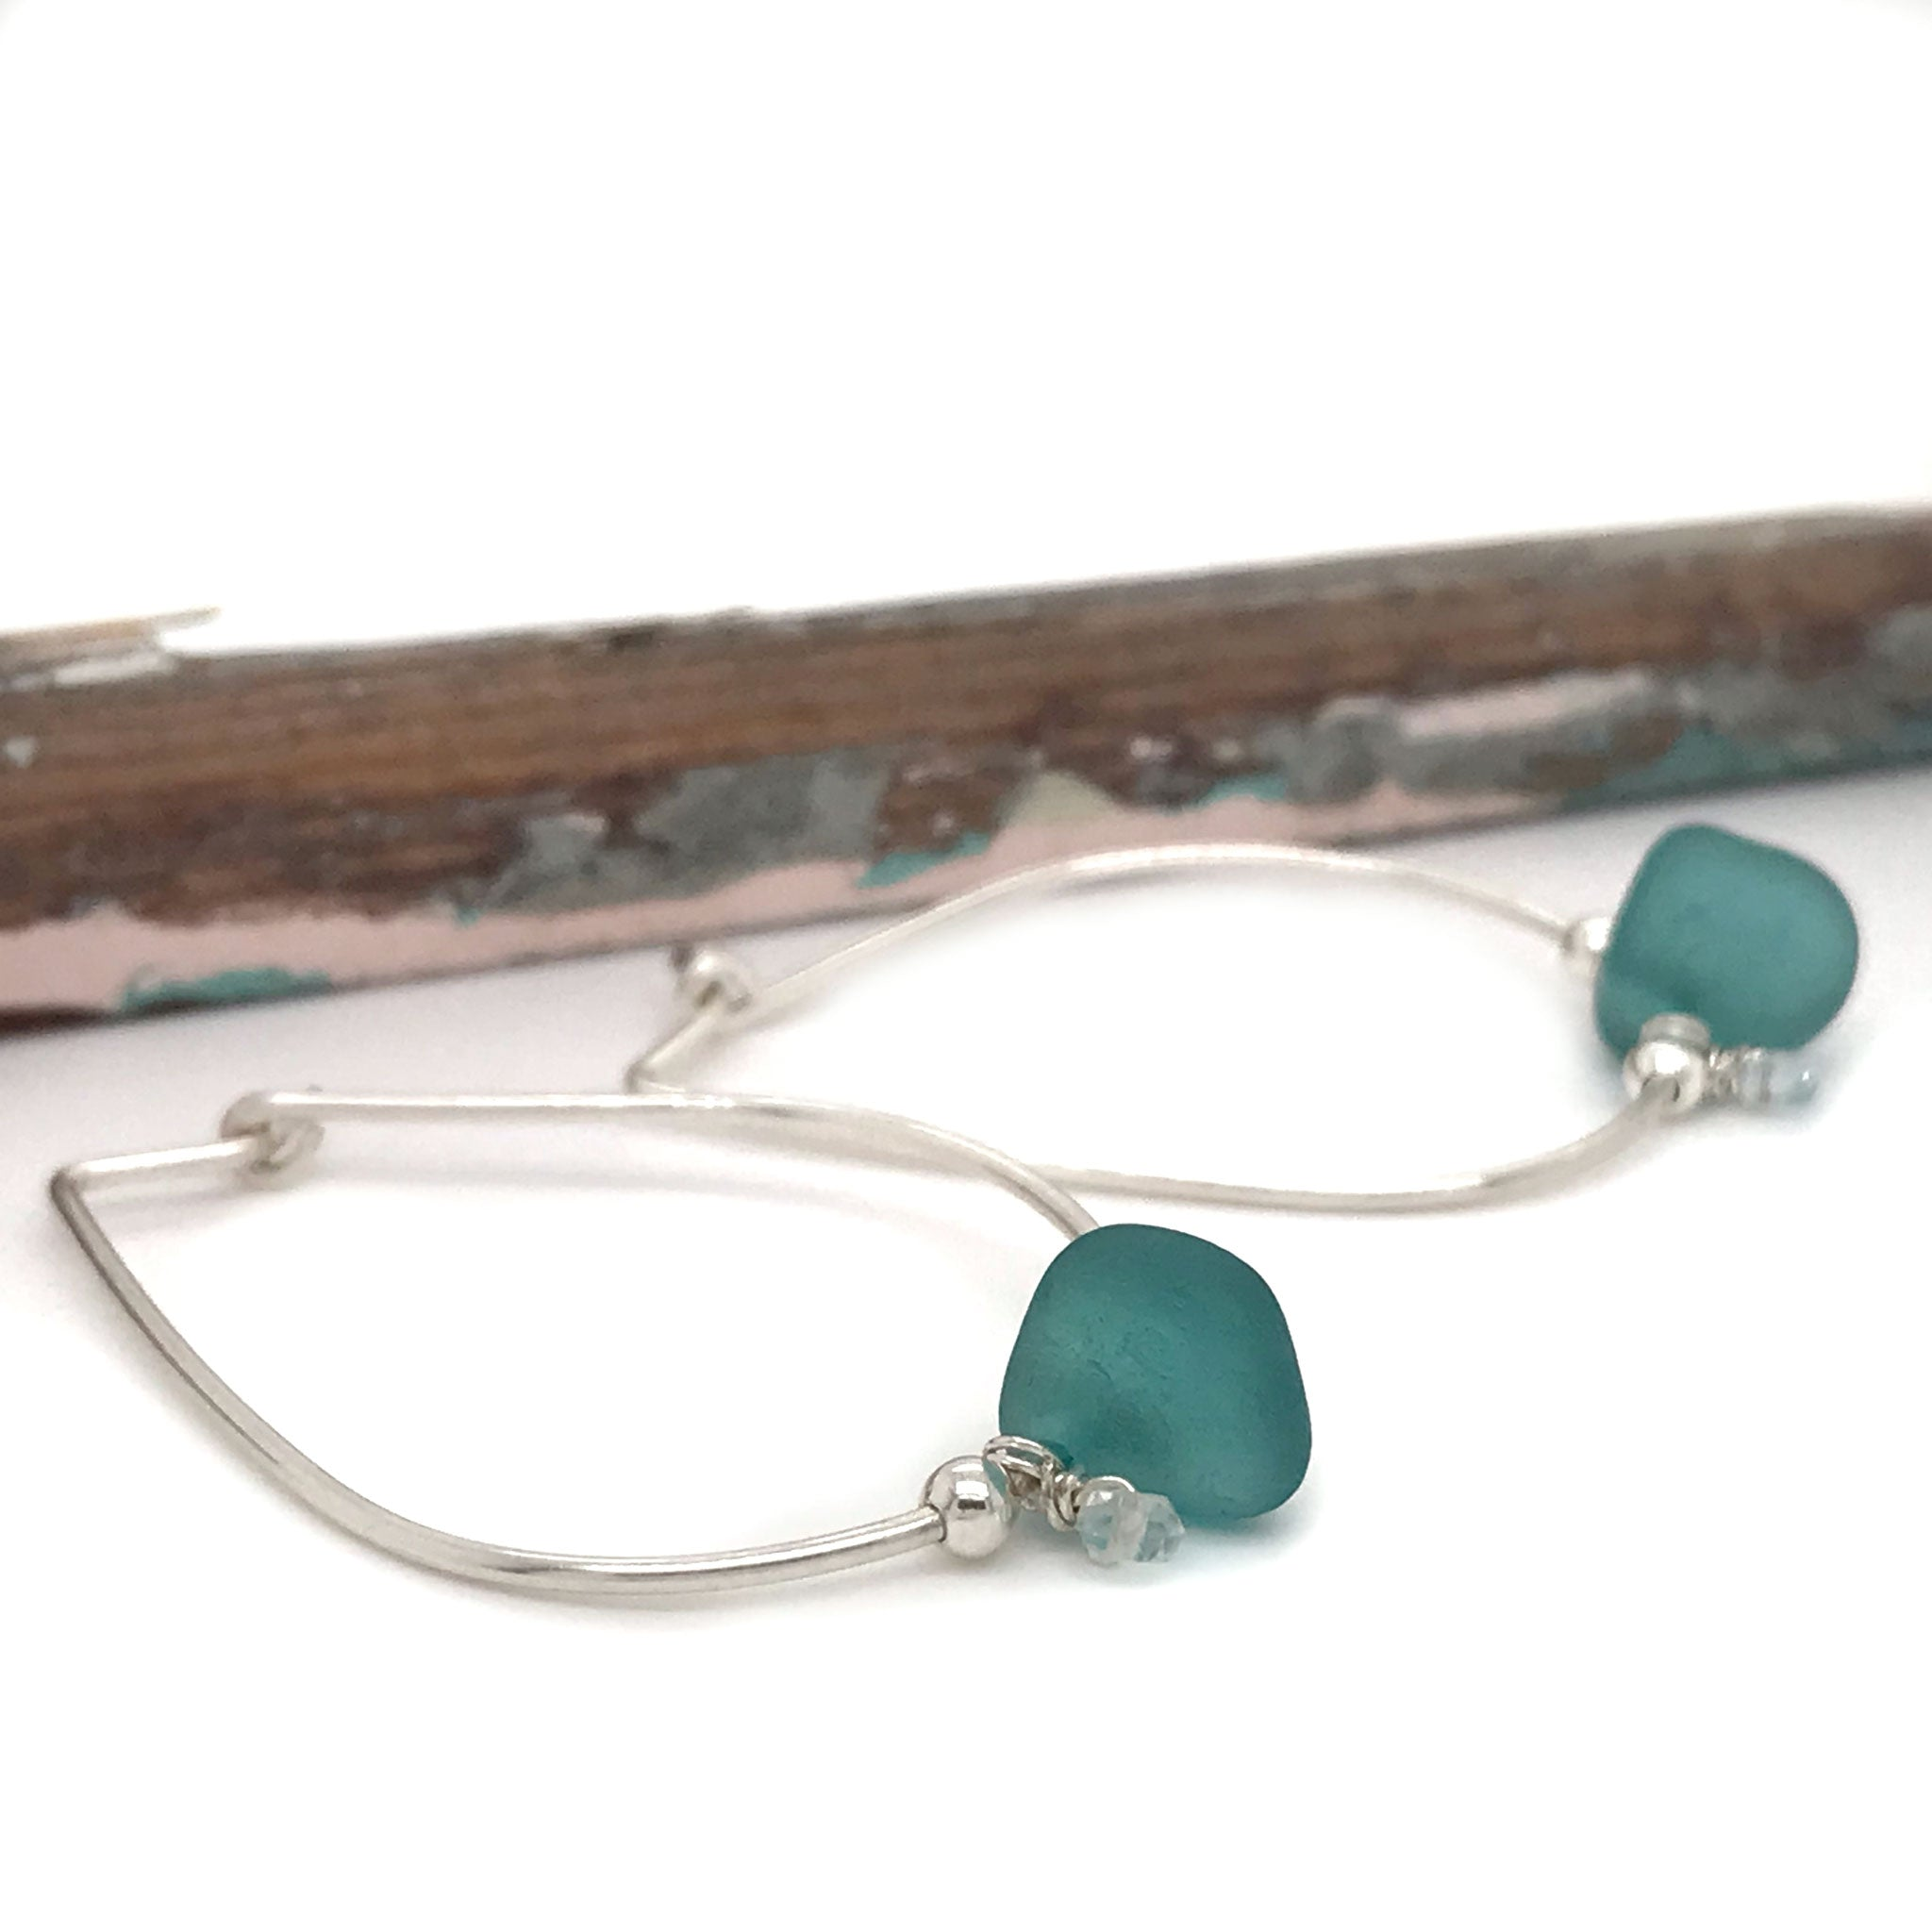 teal seaglass on sterling silver hoop earrings with aquamarines Kriket Broadhurst jewellery made in Sydney